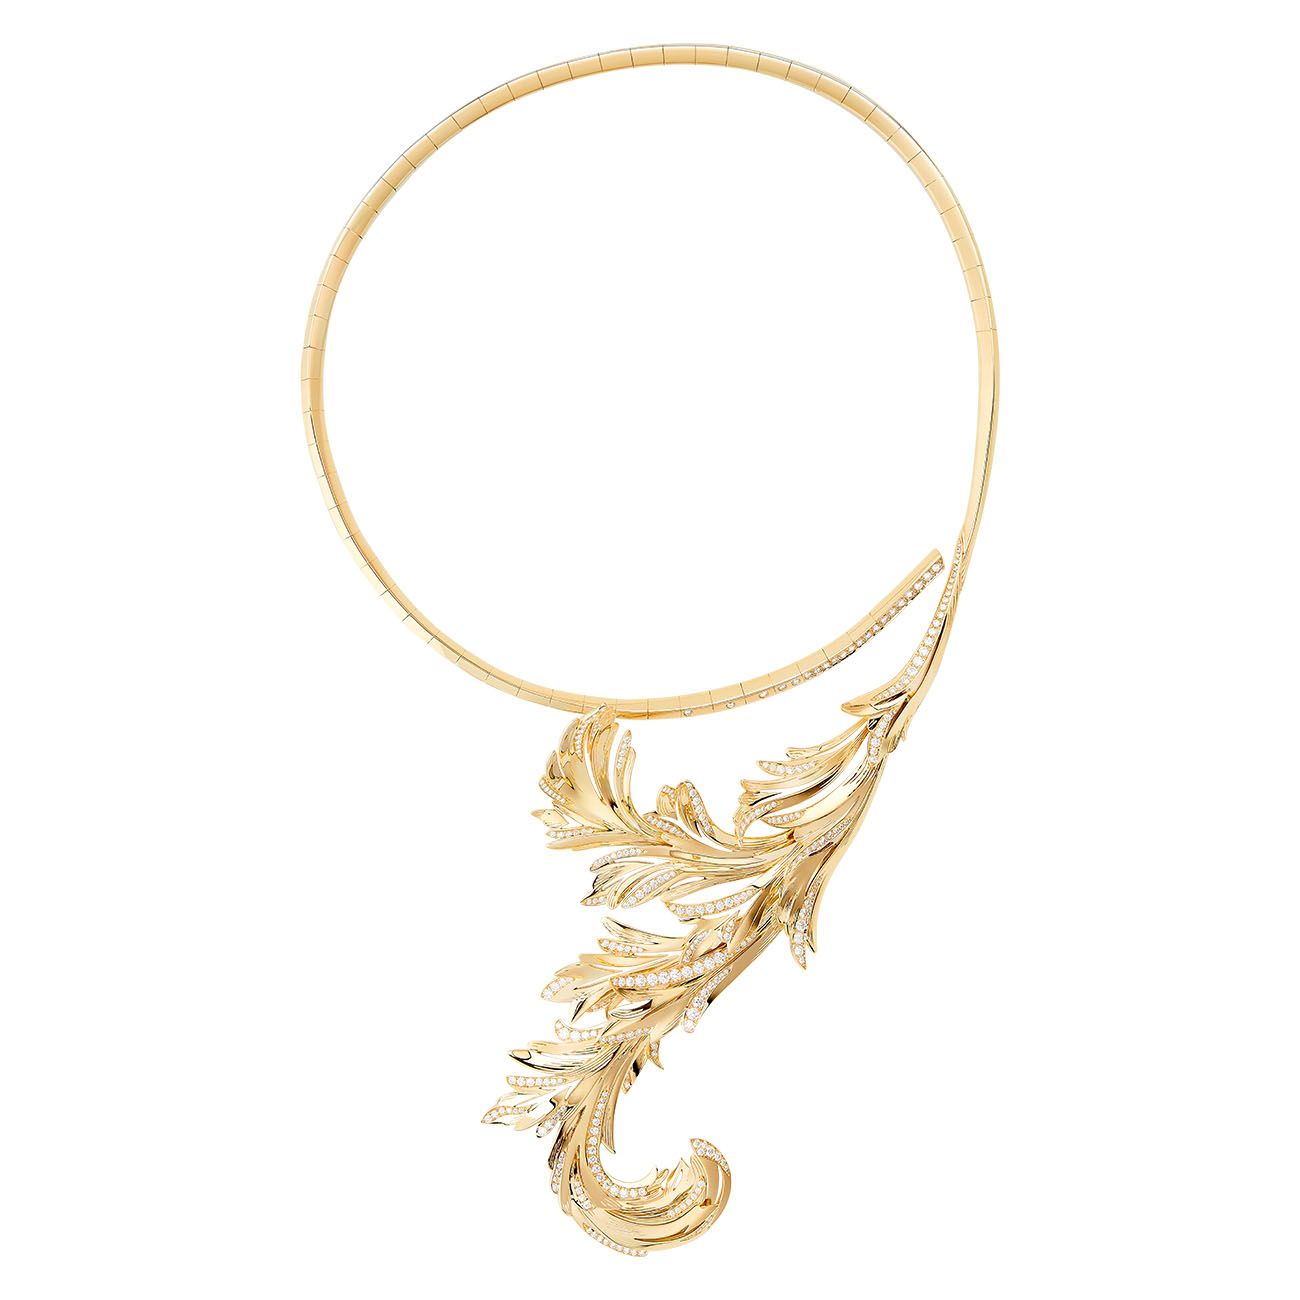 Boucheron - Feuilles d'Acanthe Question Mark necklace set with diamonds on yellow gold